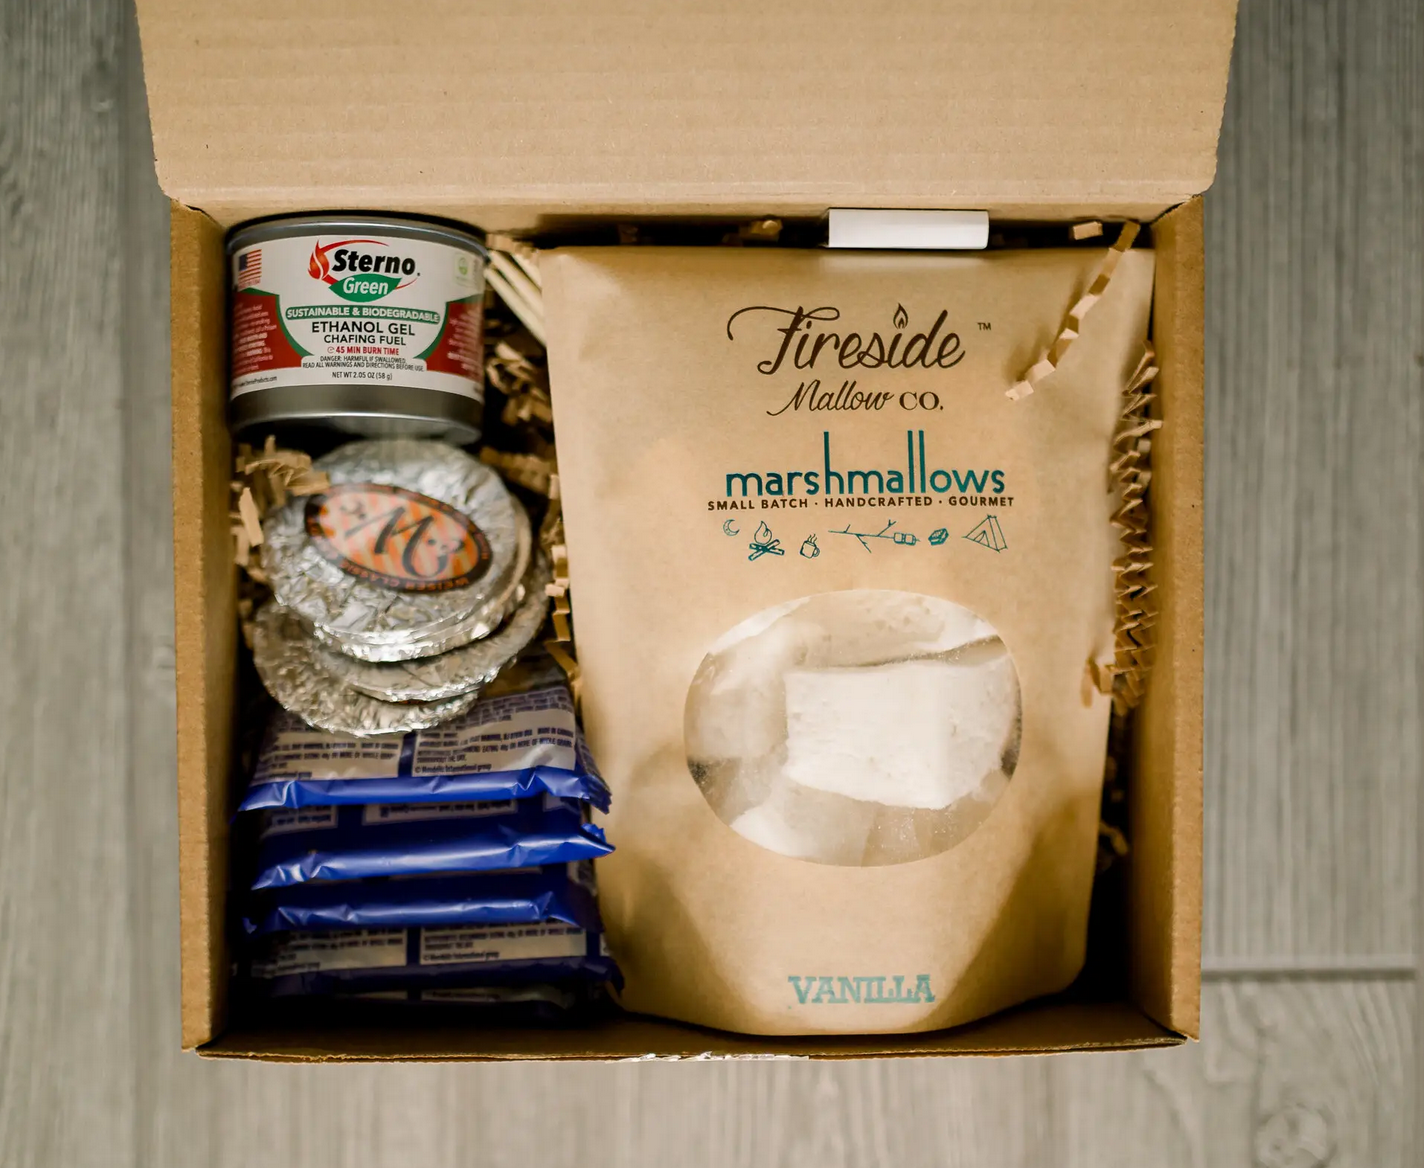 Creekside Mallow Co. / Fireside Mallow Co. Gourmet S'Mores To-Go Kit